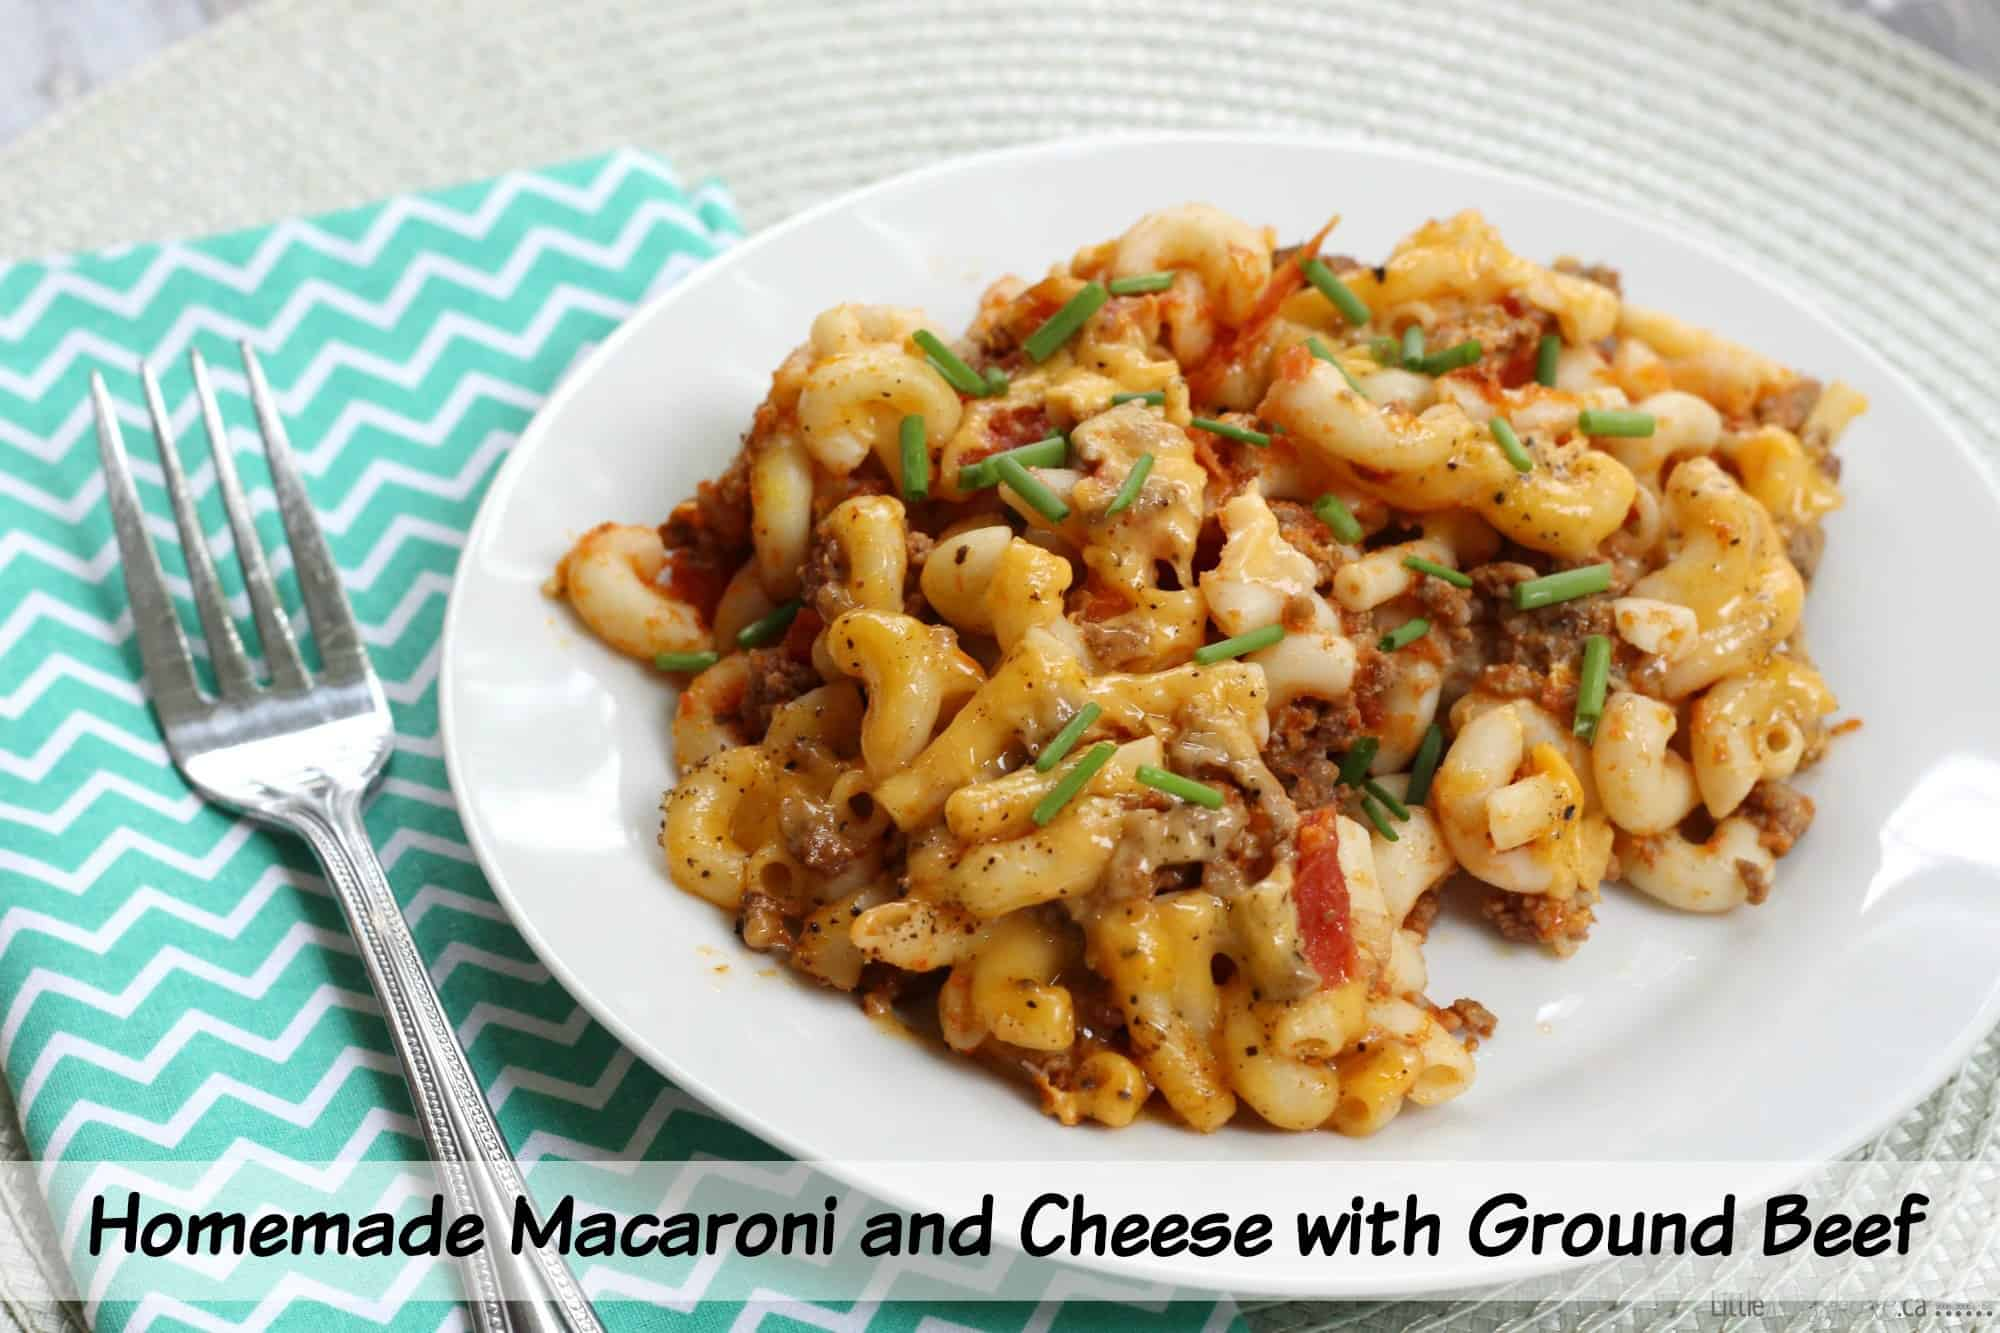 Homemade Macaroni and Cheese with Ground Beef Recipe